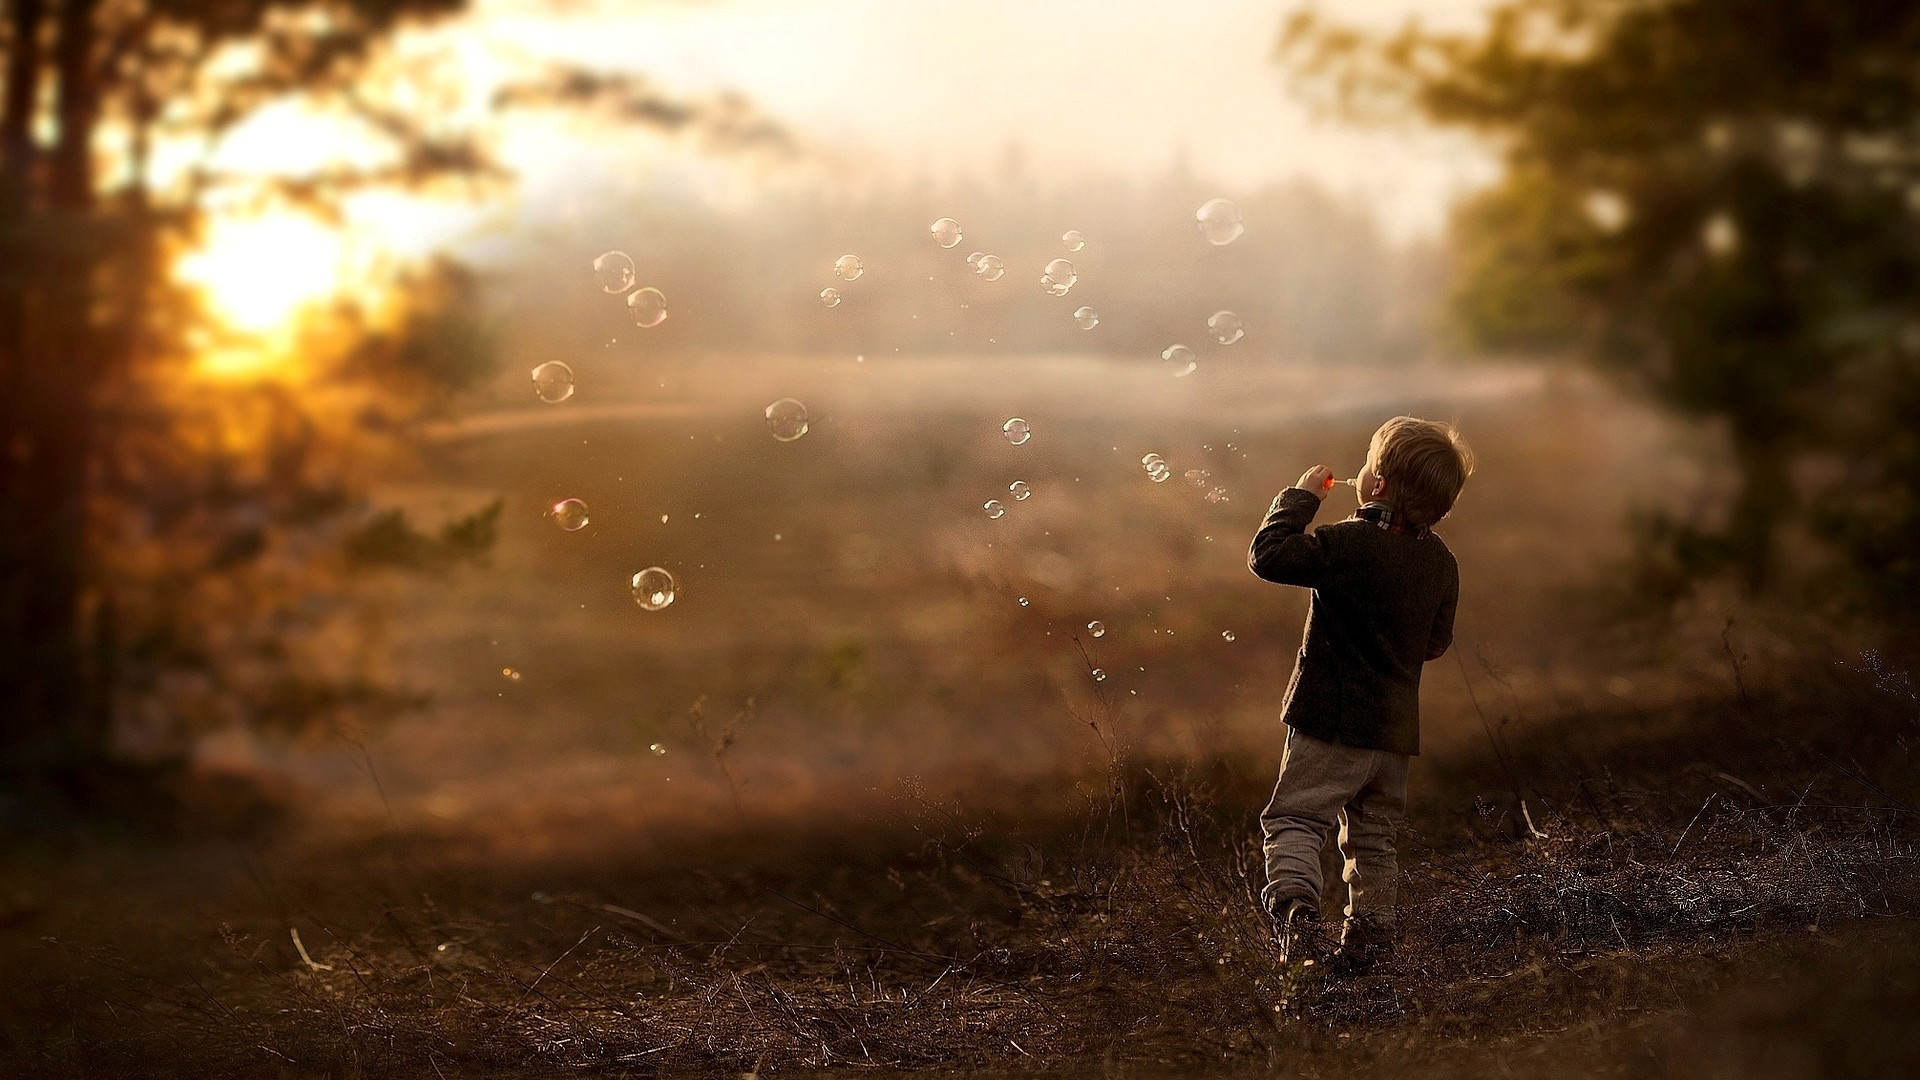 Cute Baby Love Couple Hd Wallpaper Children Bubbles Depth Of Field Nature Sunlight Wallpapers